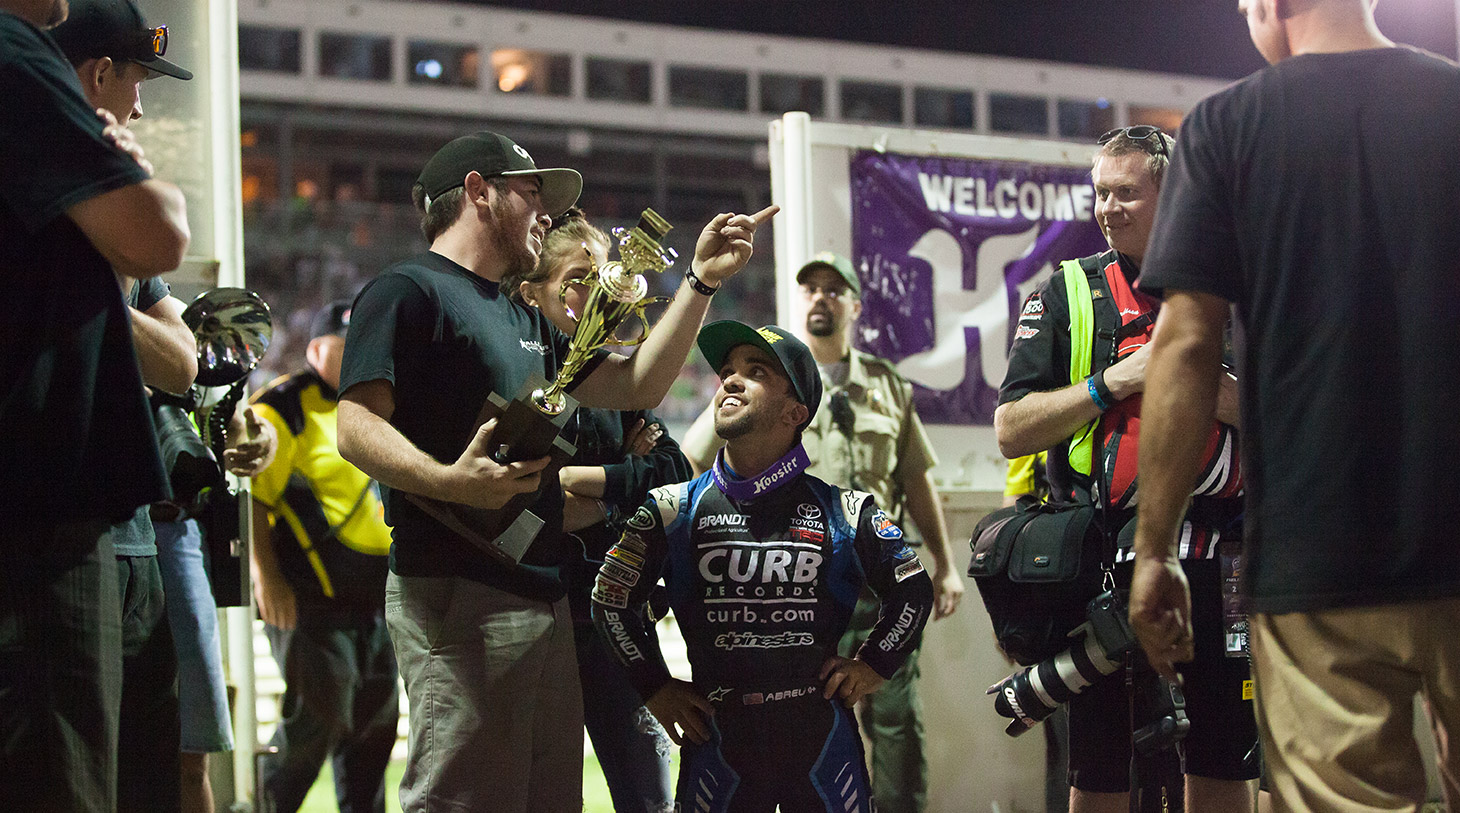 Rico Abreu wins the A Main on night 3 of The 2016 Knoxville Nationals. (Jeffrey Turford / TDP)